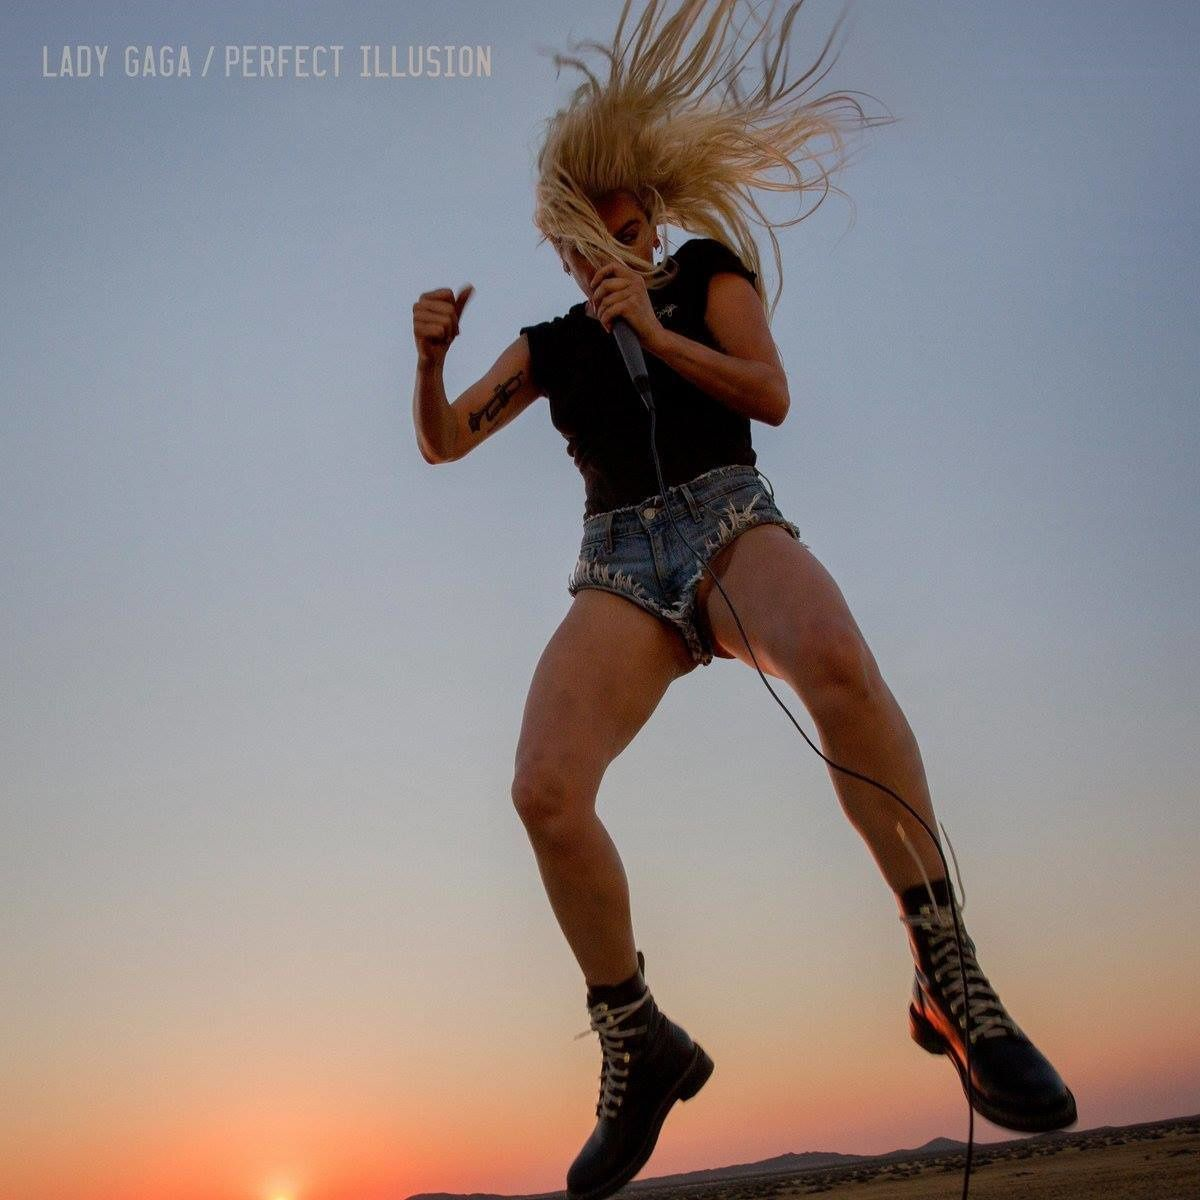 Nouveau Single: Perfect Illusion Lady Gaga